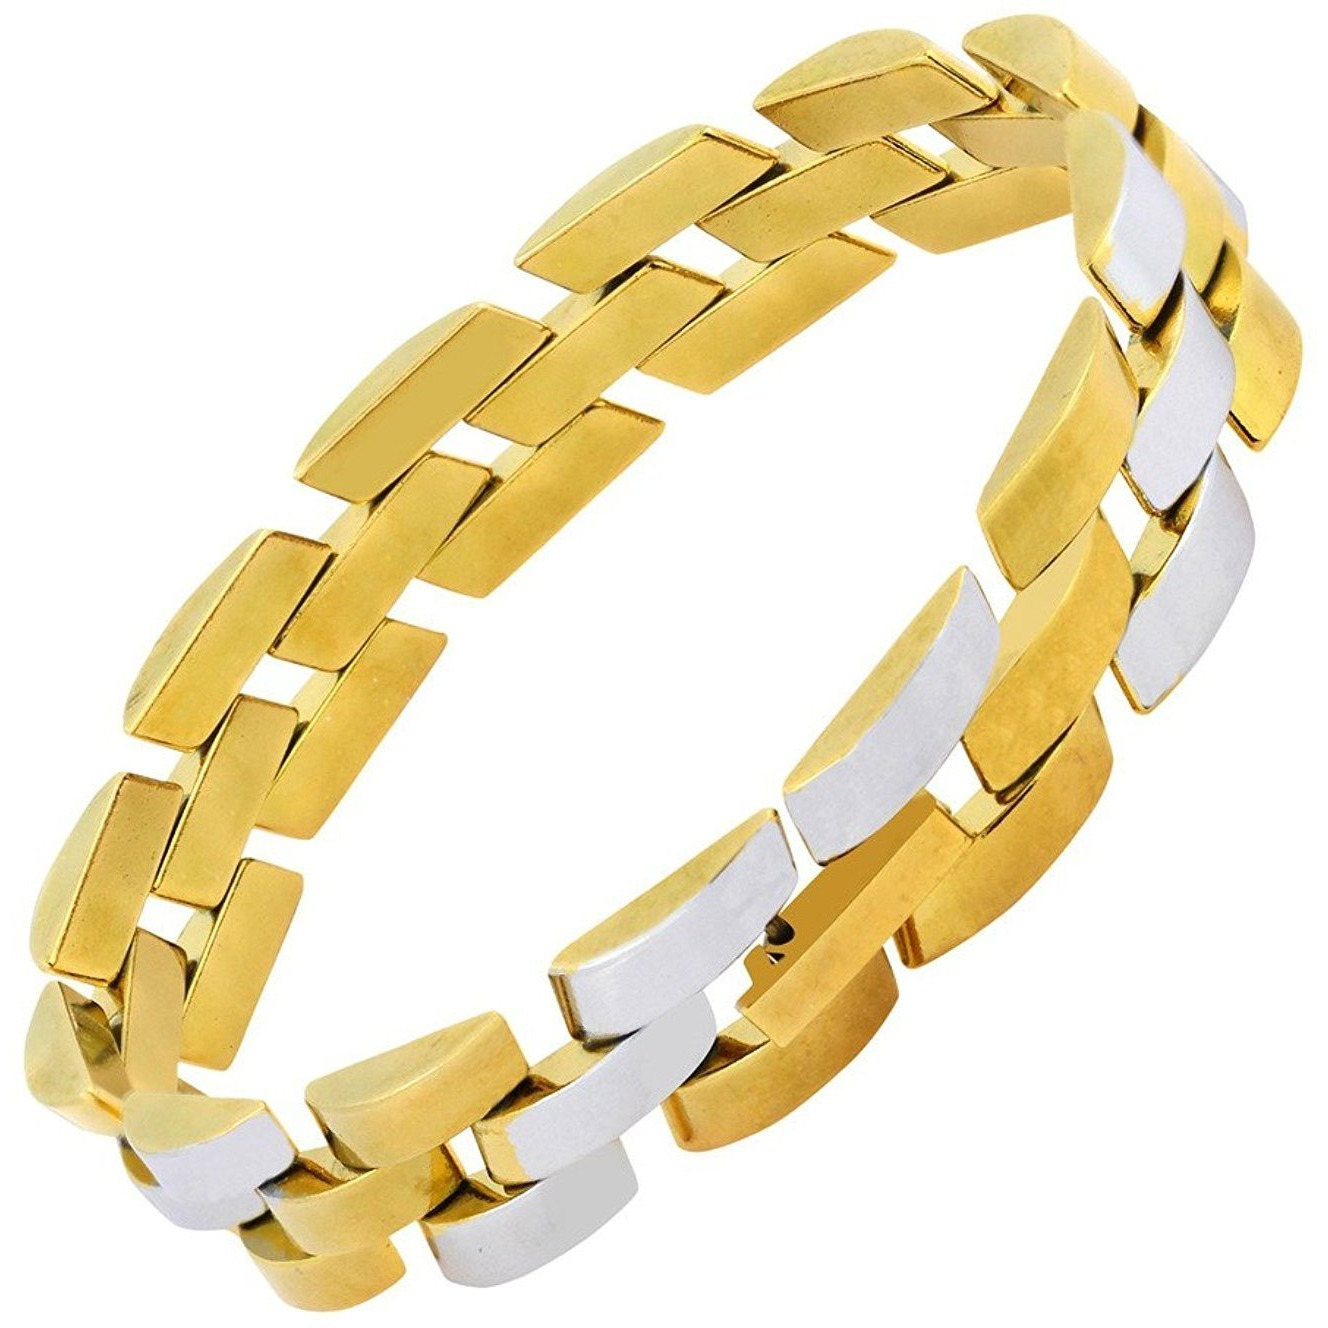 Zivom Surgical Stainless Steel 18K Gold Rhodium Plated Bracelet Men